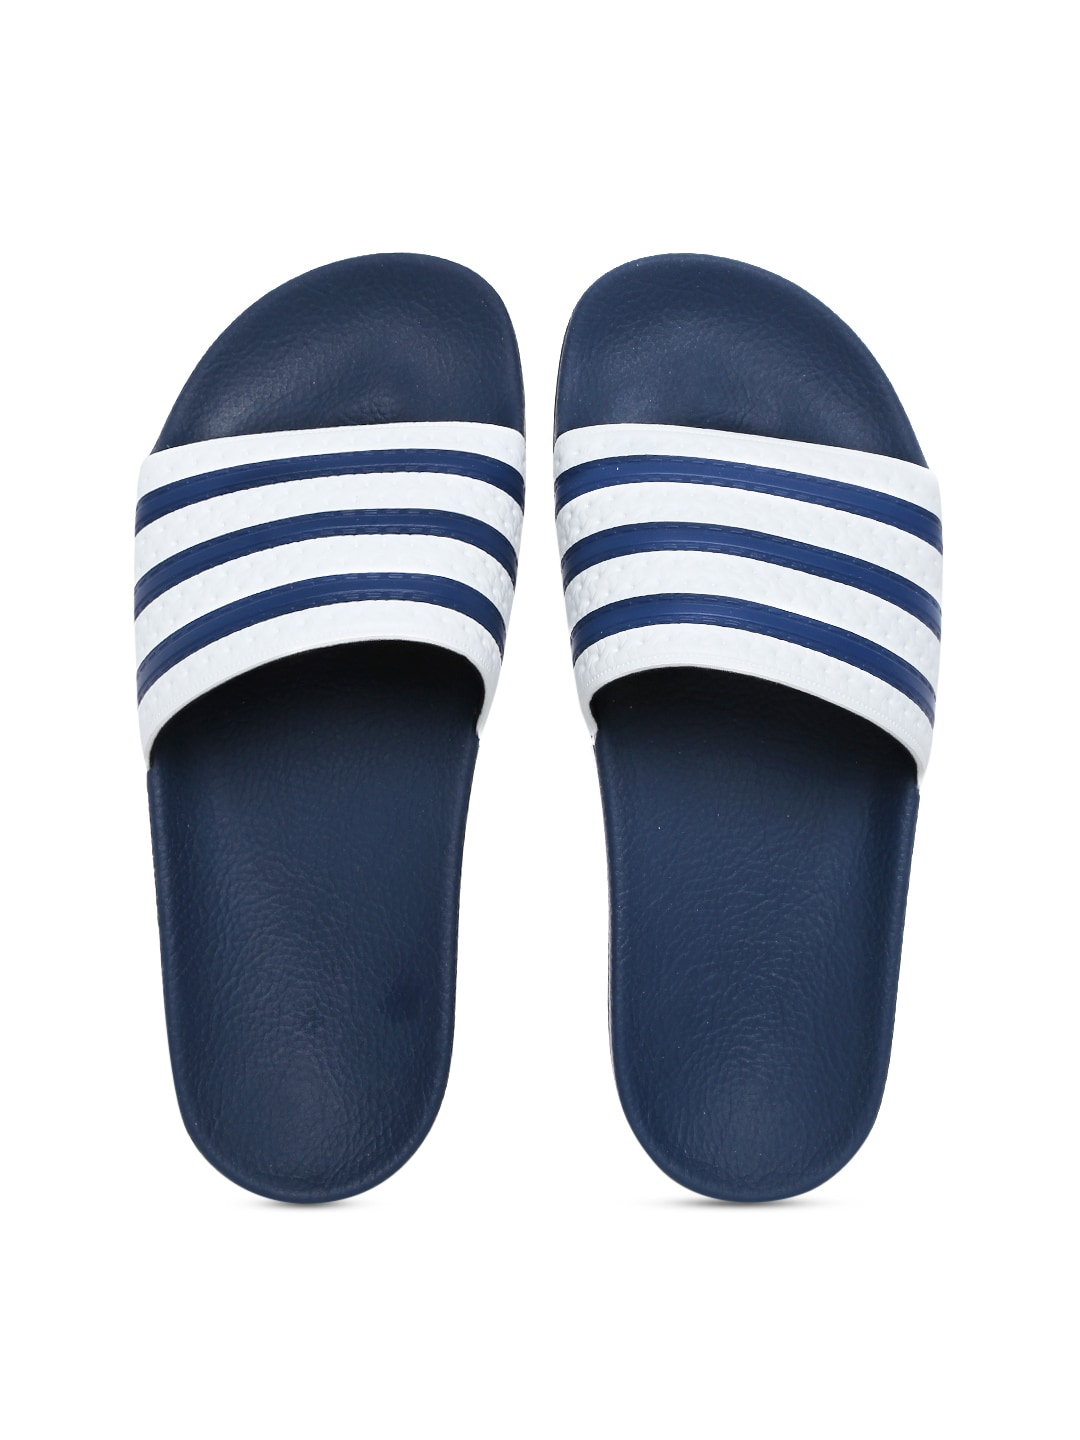 c5ebe4c21eb85 Adidas Slippers - Buy Adidas Slipper   Flip Flops Online India